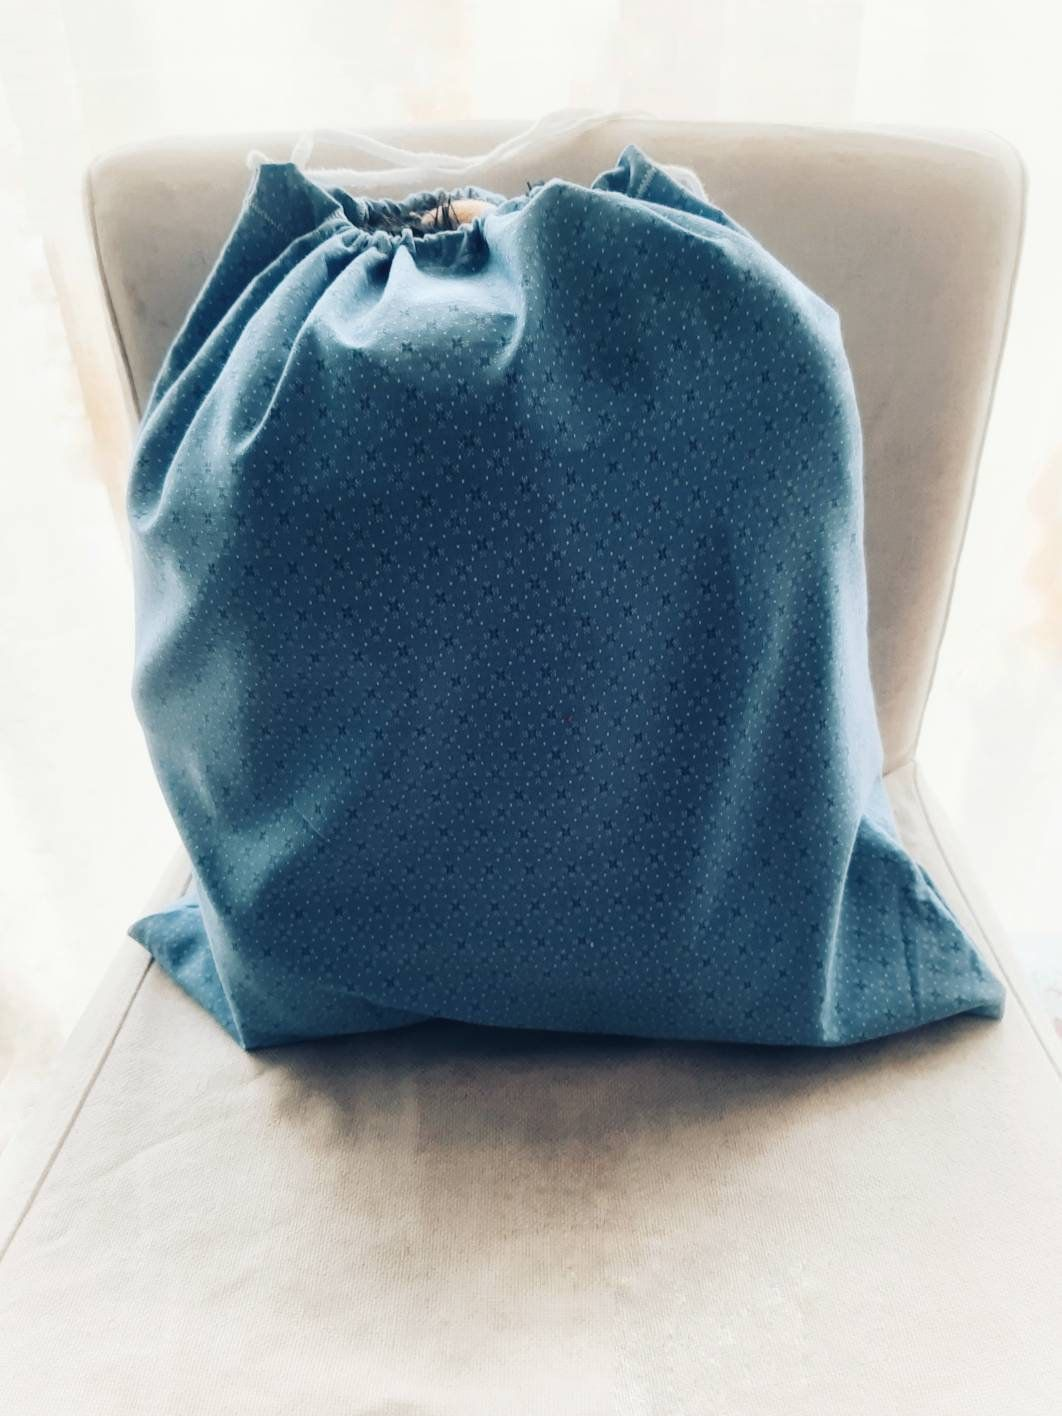 Big Travel Laundry Bags Made From Light Blue Cotton Zero Waste